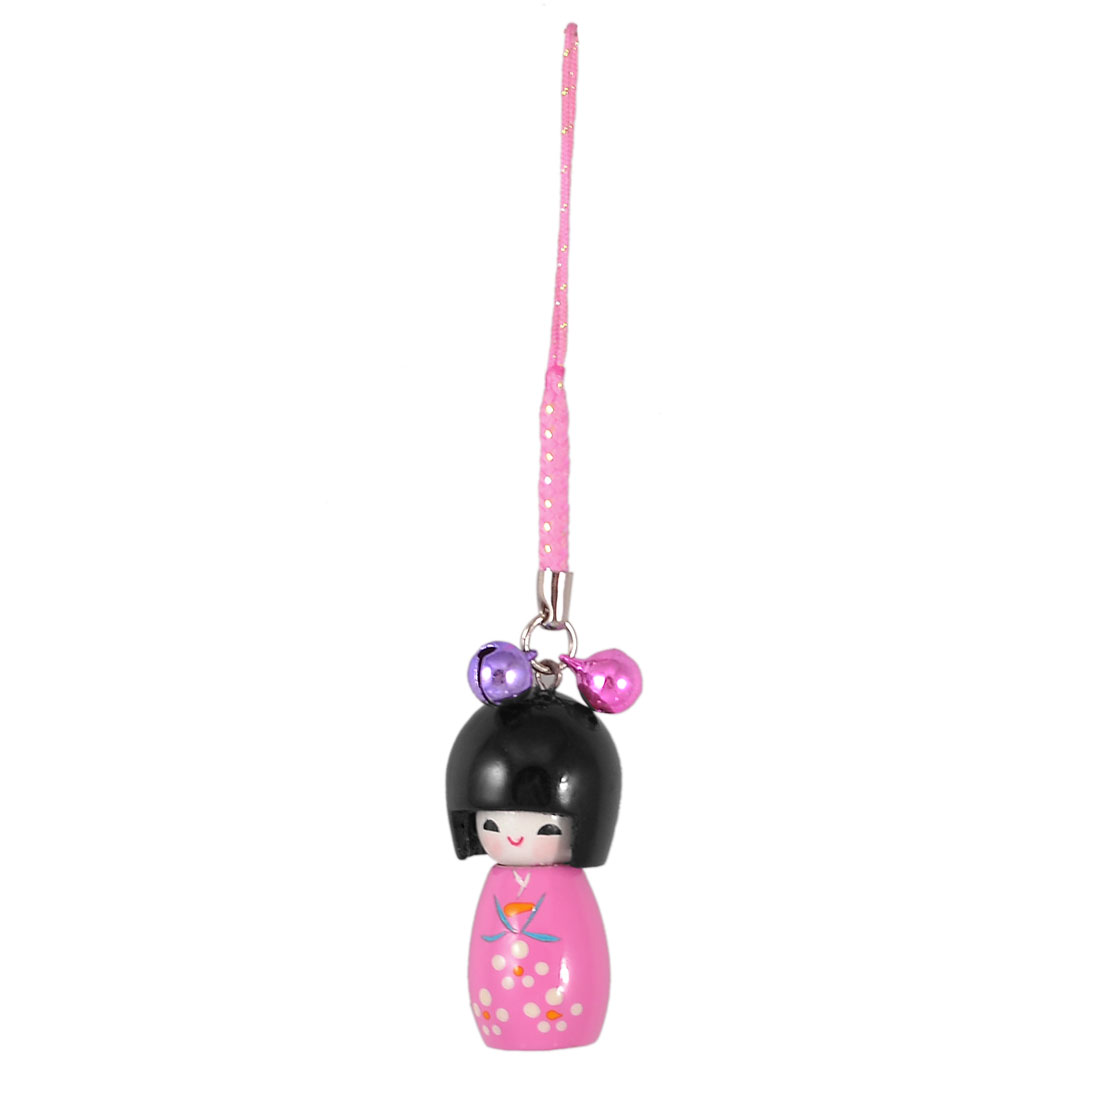 Pink Black Wooden Japanese Kokeshi Doll Pendant Mobile Phone Charm w String